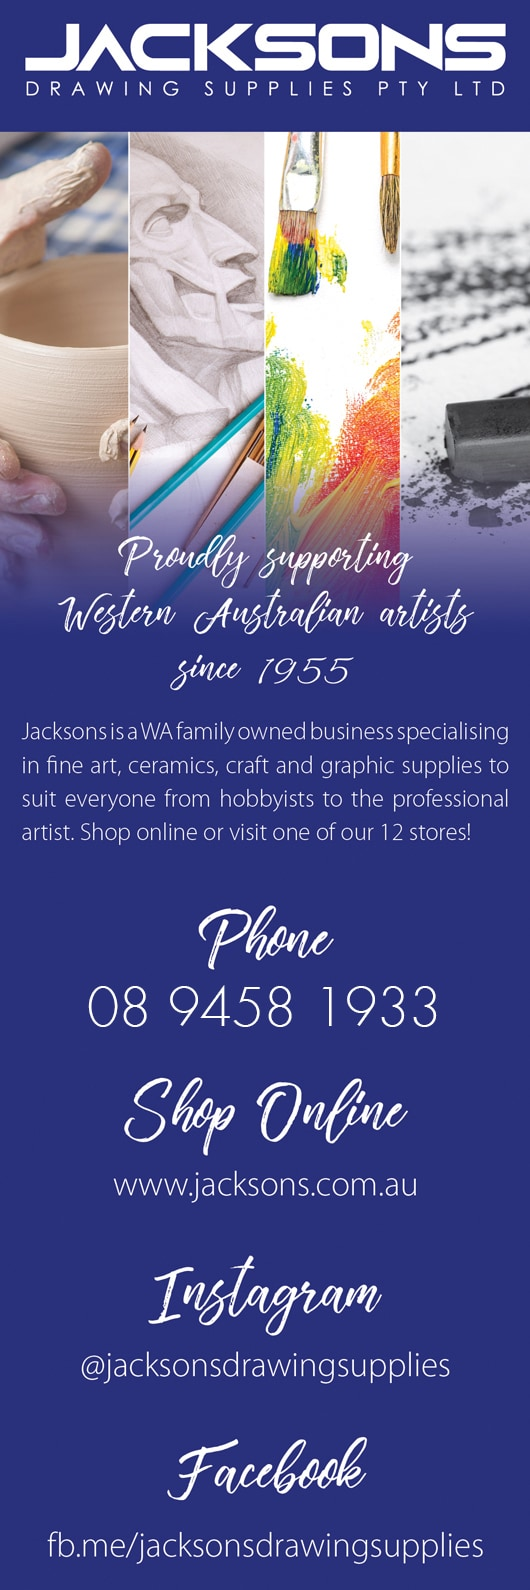 Jacksons Drawing Supplies - Art Supplies - Unit 10 1468 Albany Hwy